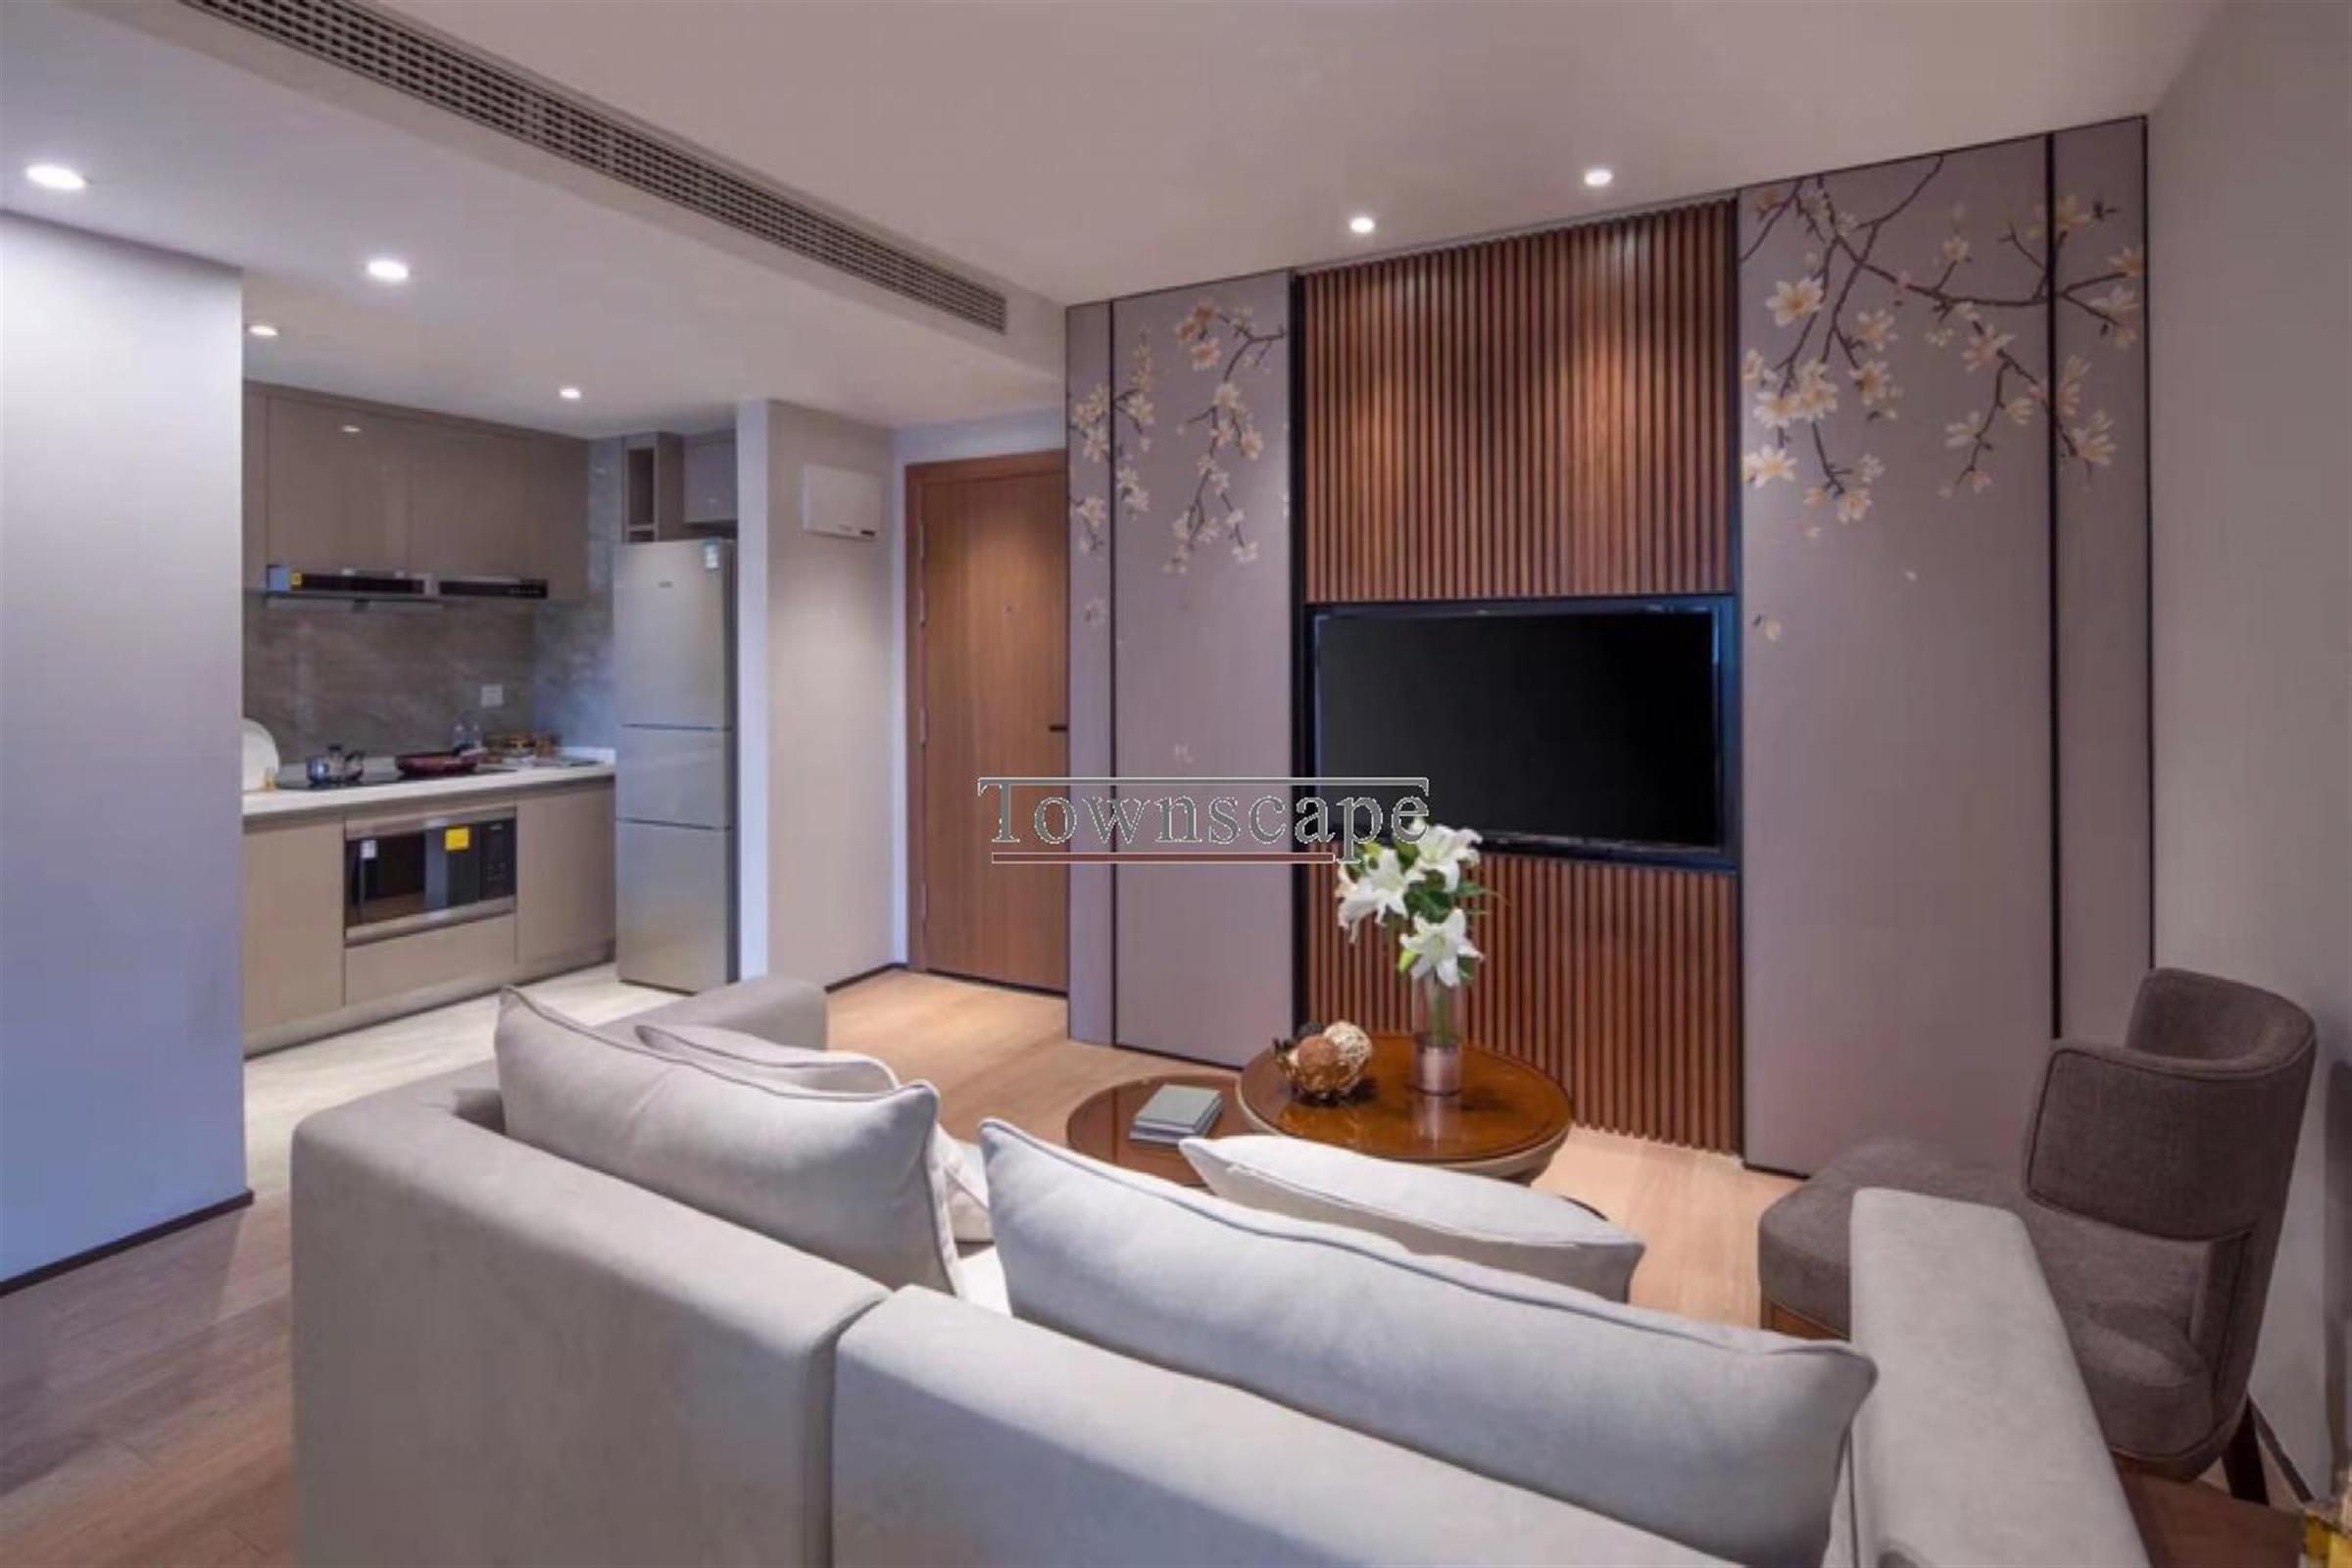 classy decor Beautifully Decorated, Newly Opened Studio Service Apartments in Jing